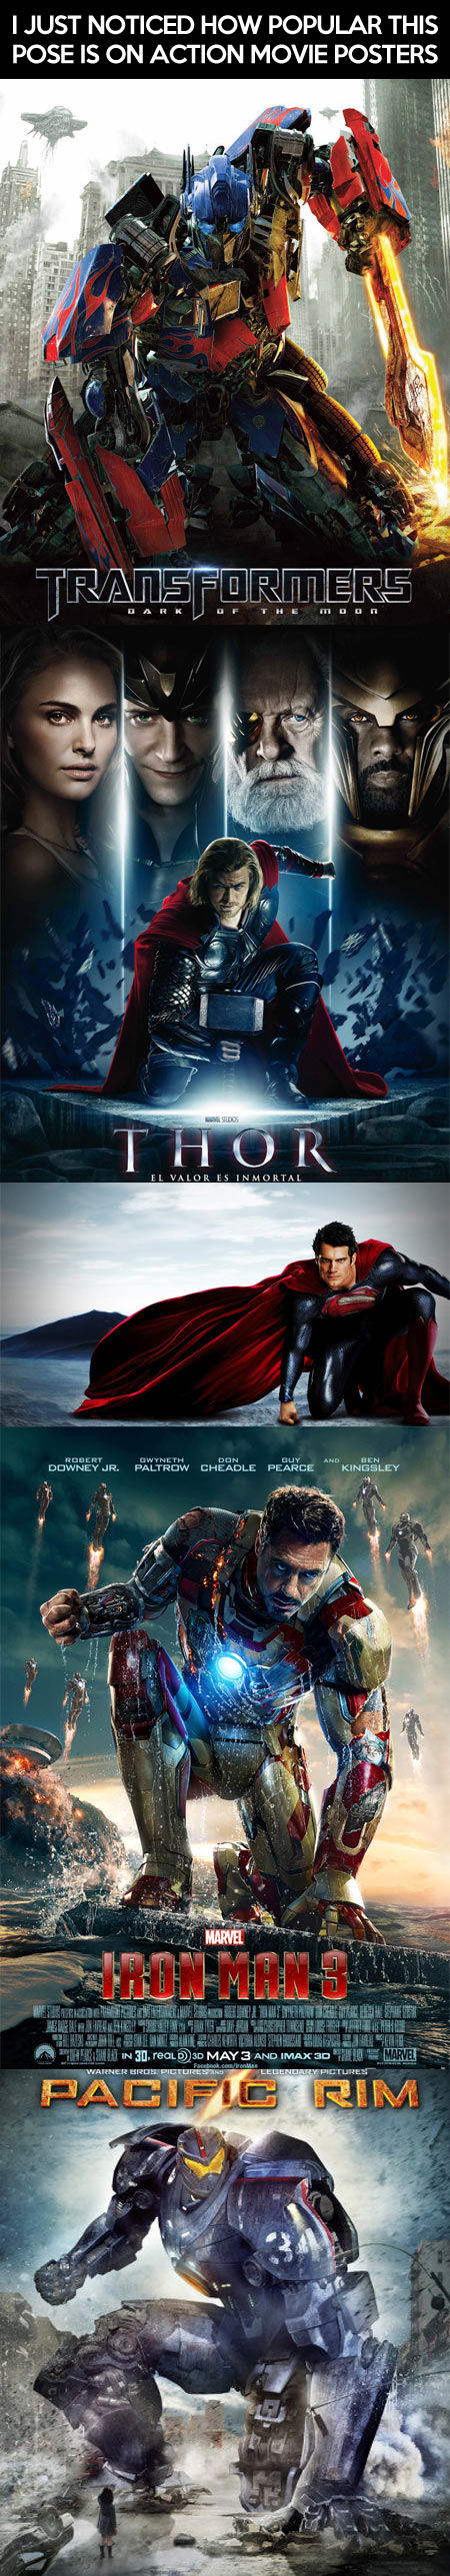 funny-movies-poster-Transformers-Ironman